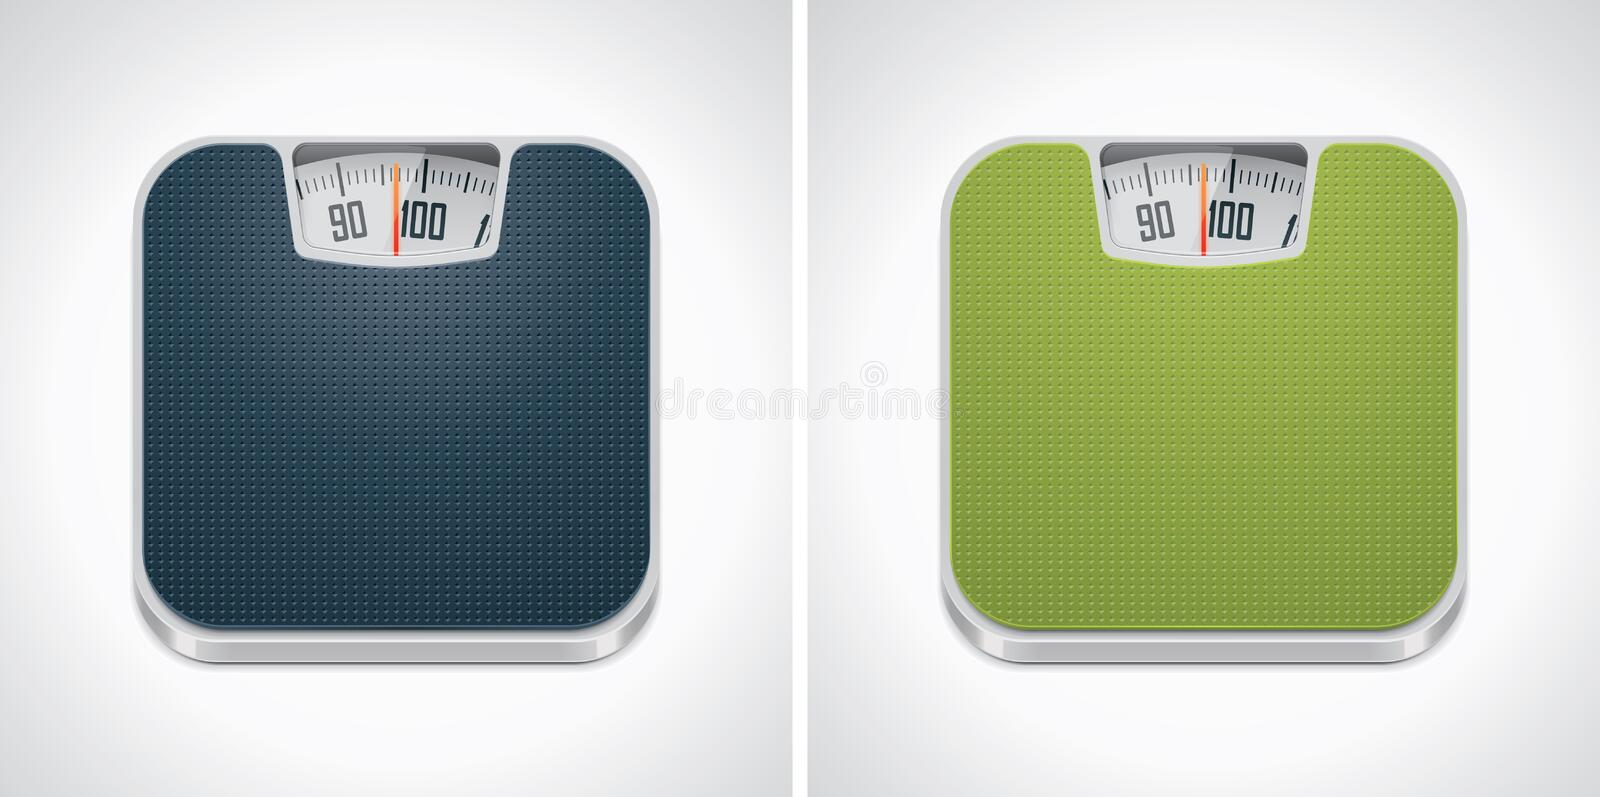 Vector bathroom weight scale icon stock illustration